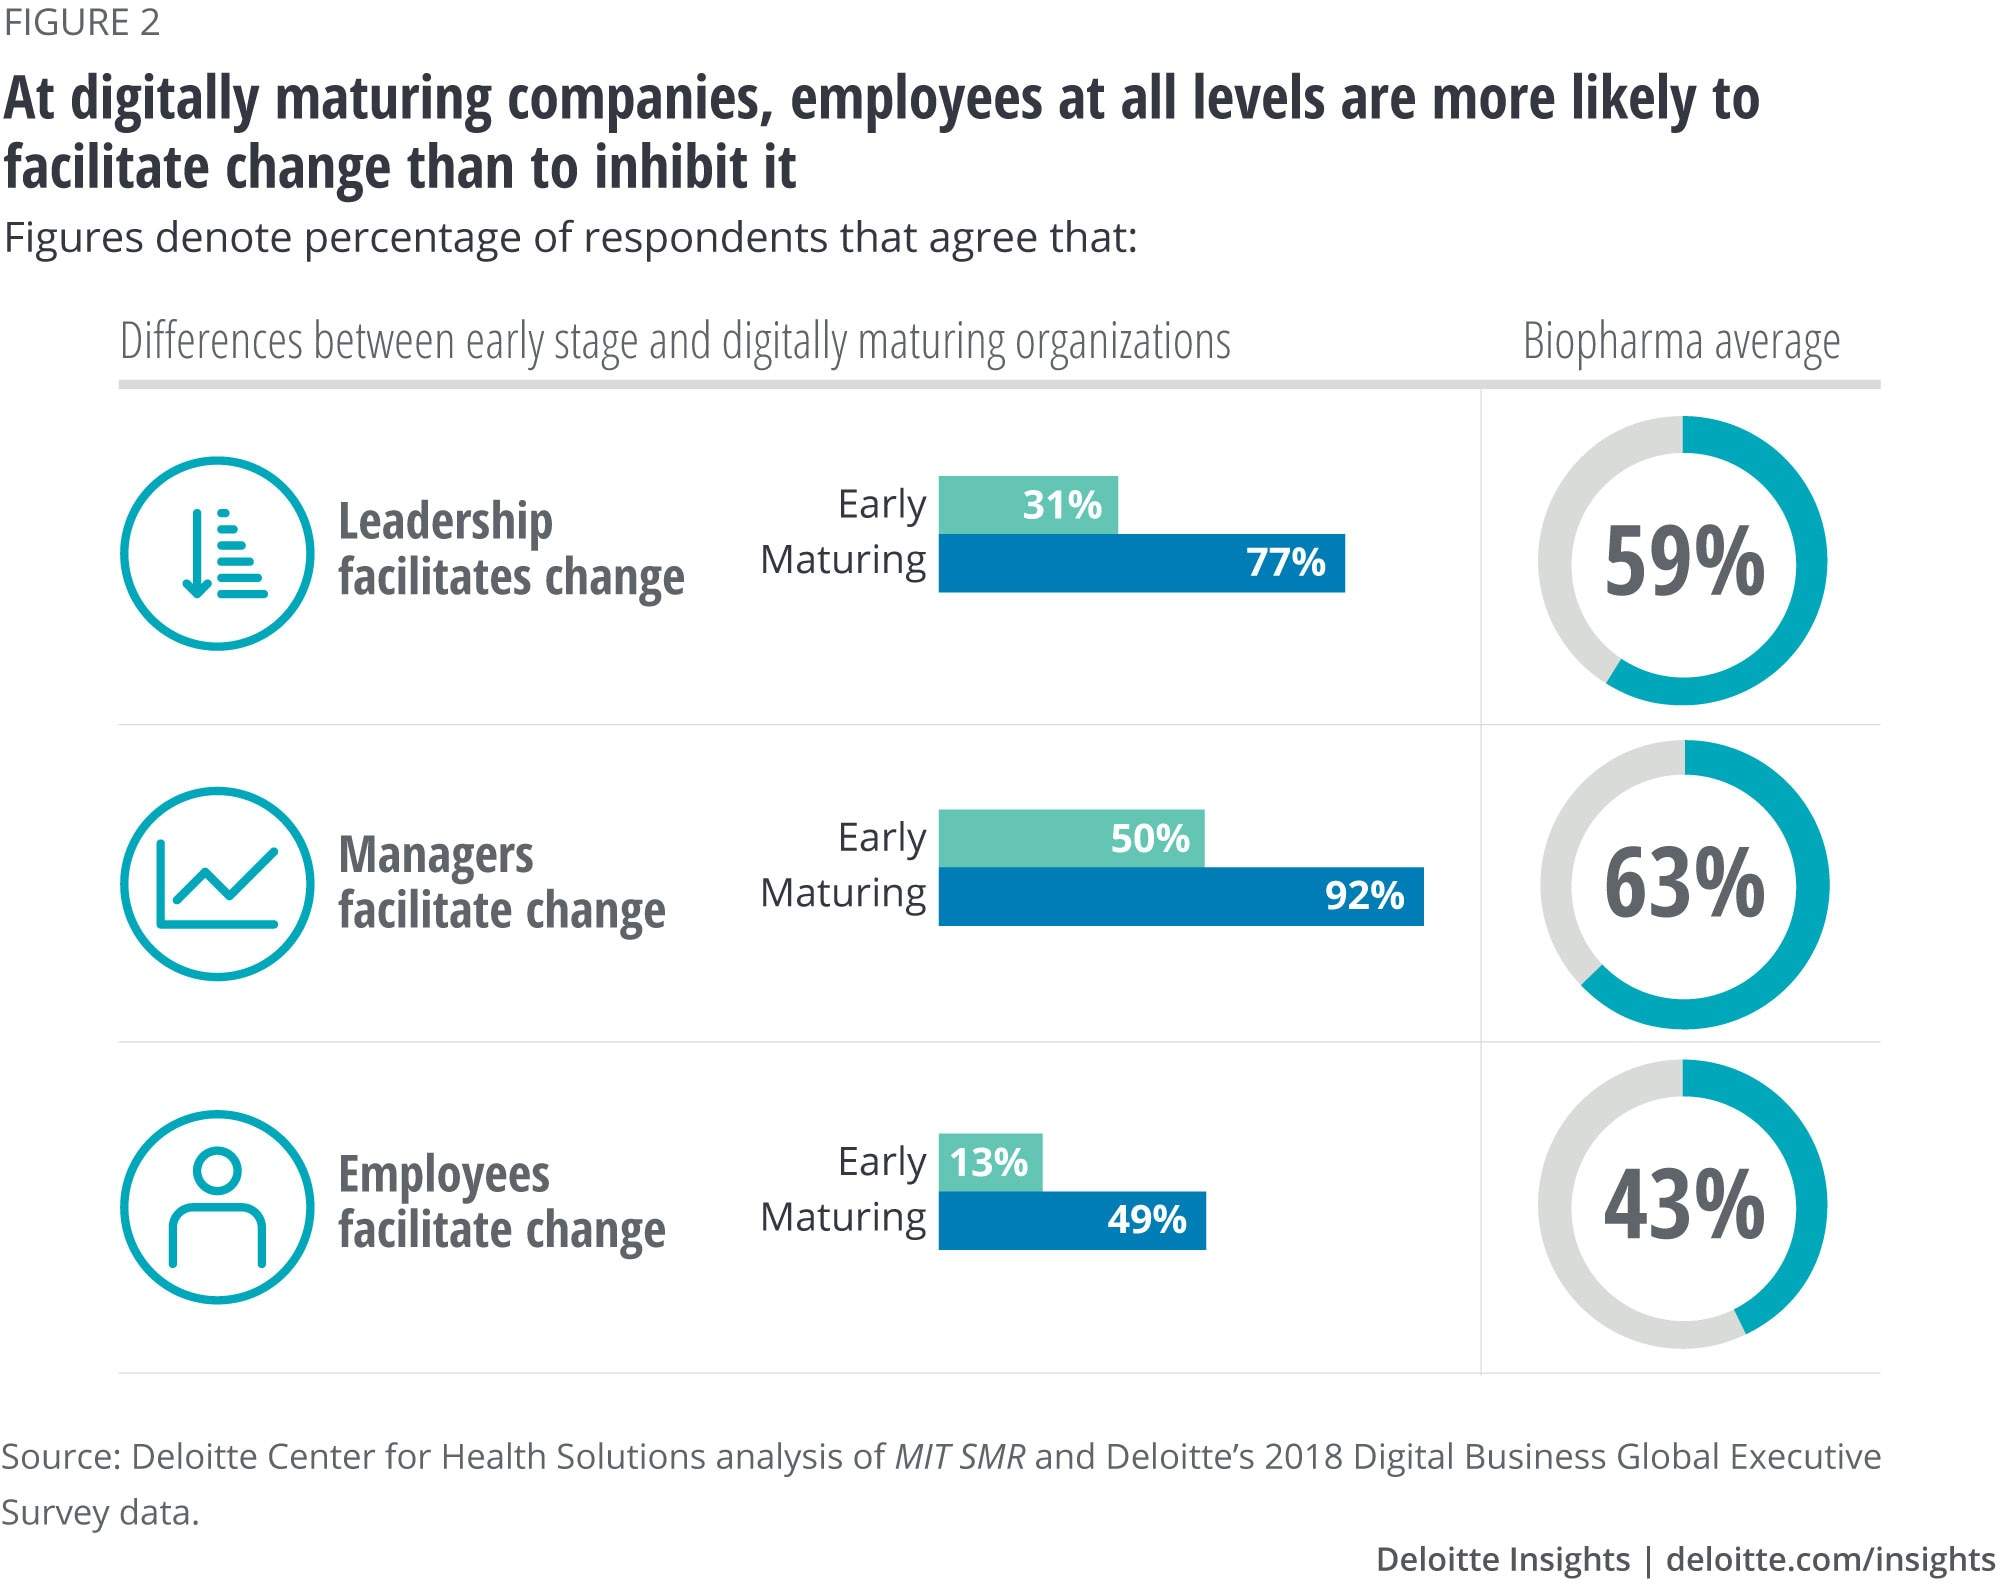 At digitally mature companies, employees at all levels are more likely to facilitate change than to inhibit it